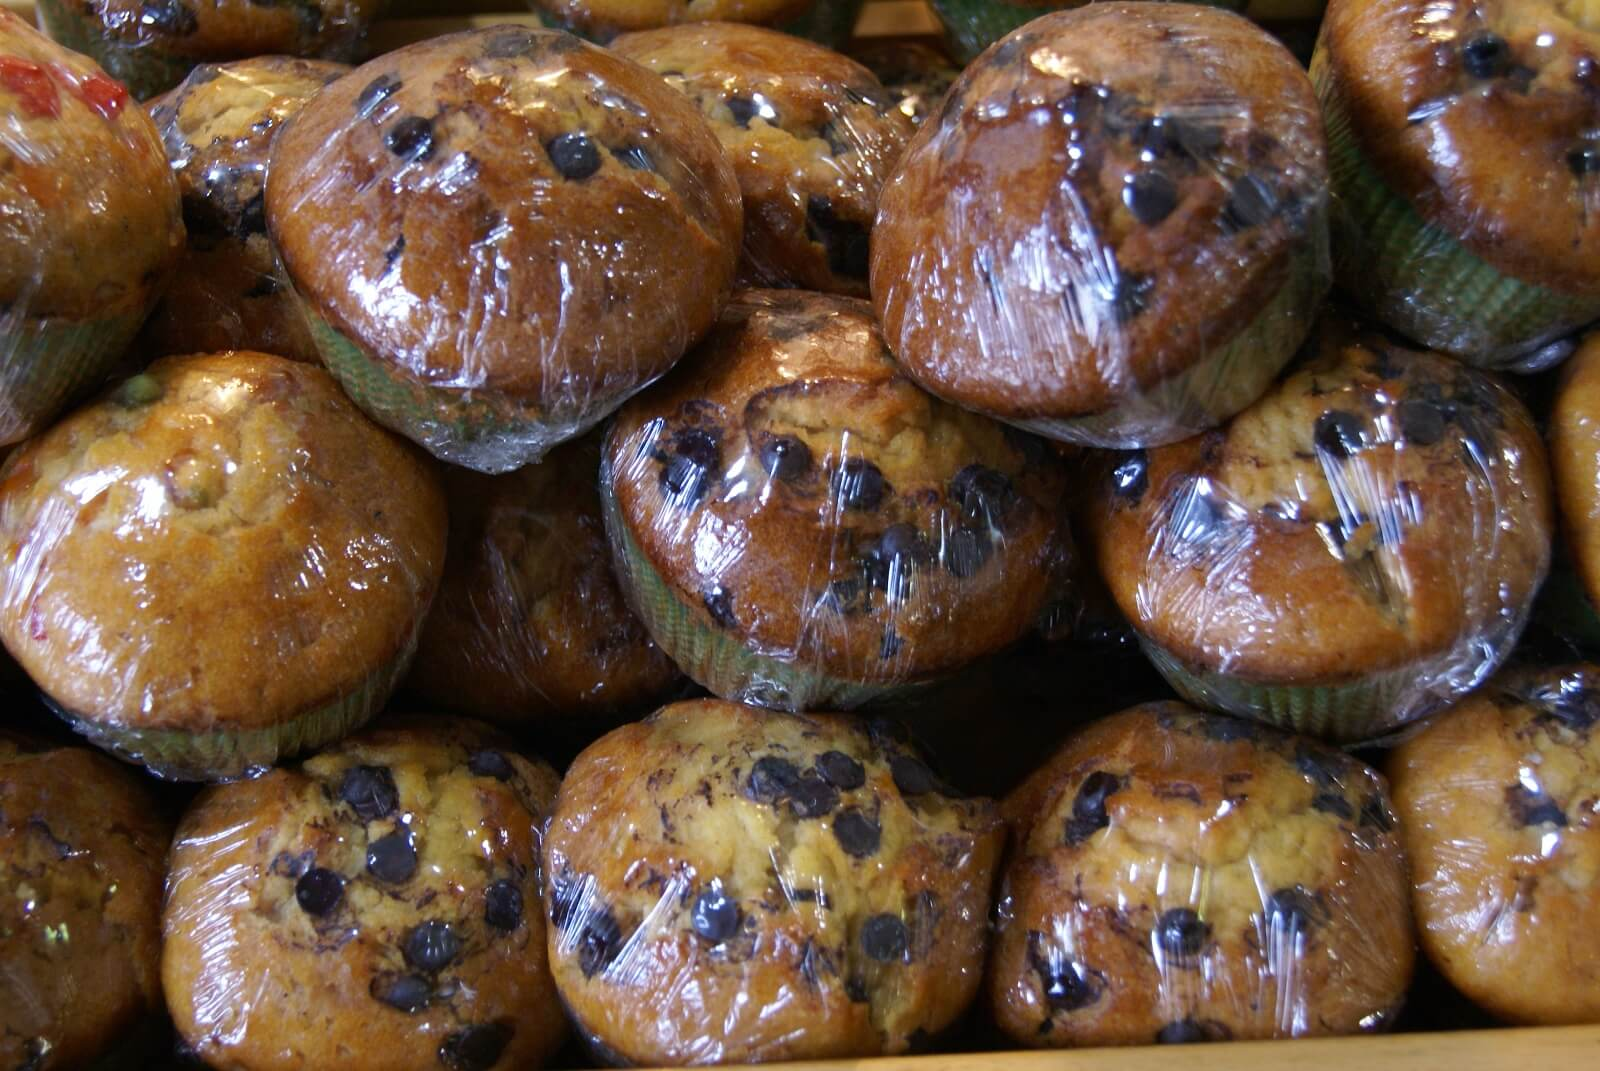 shrink wrapped chocolate chip muffins